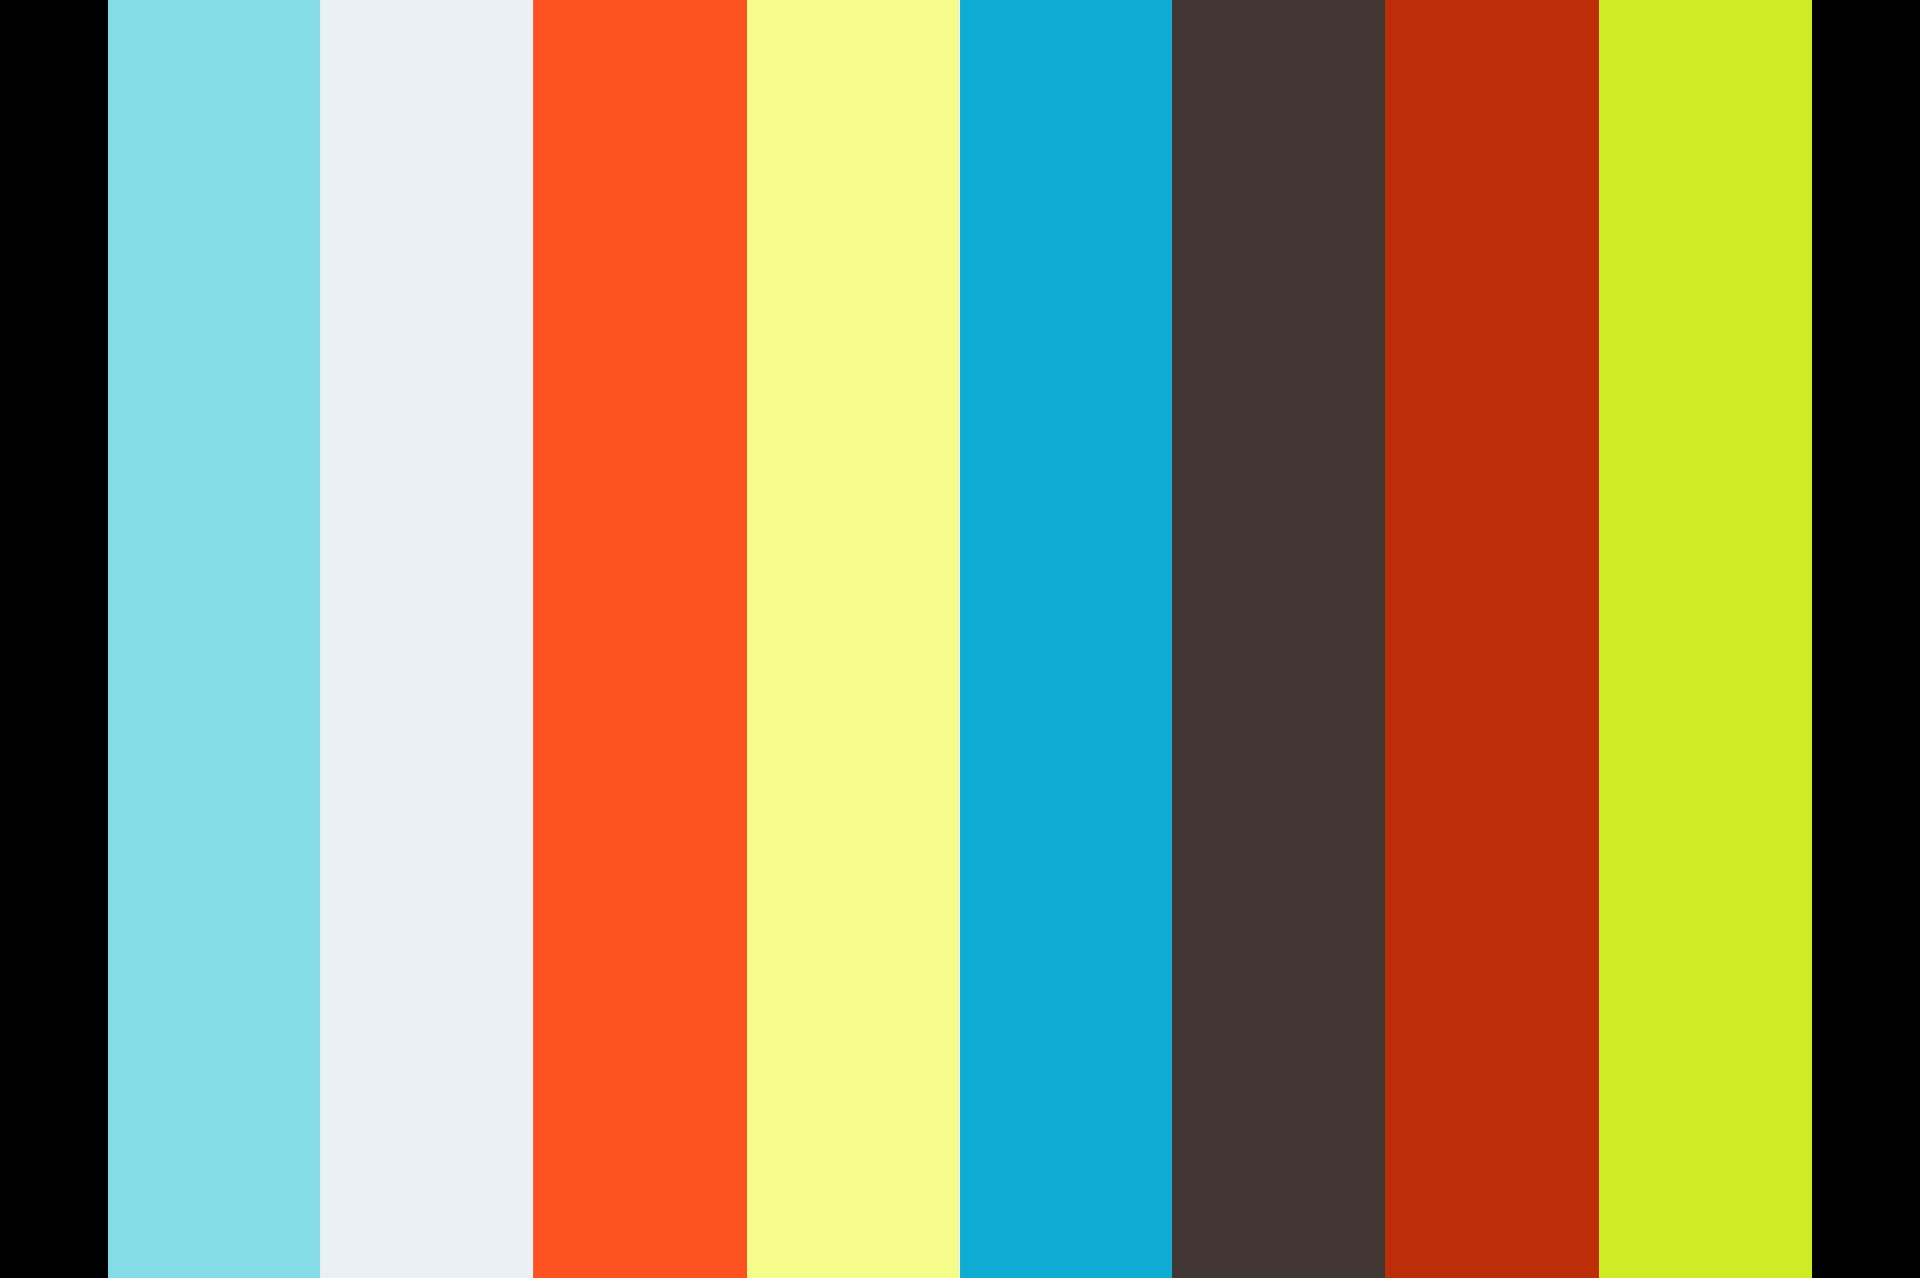 An interview with Han Kang: The fifth author for Future Library